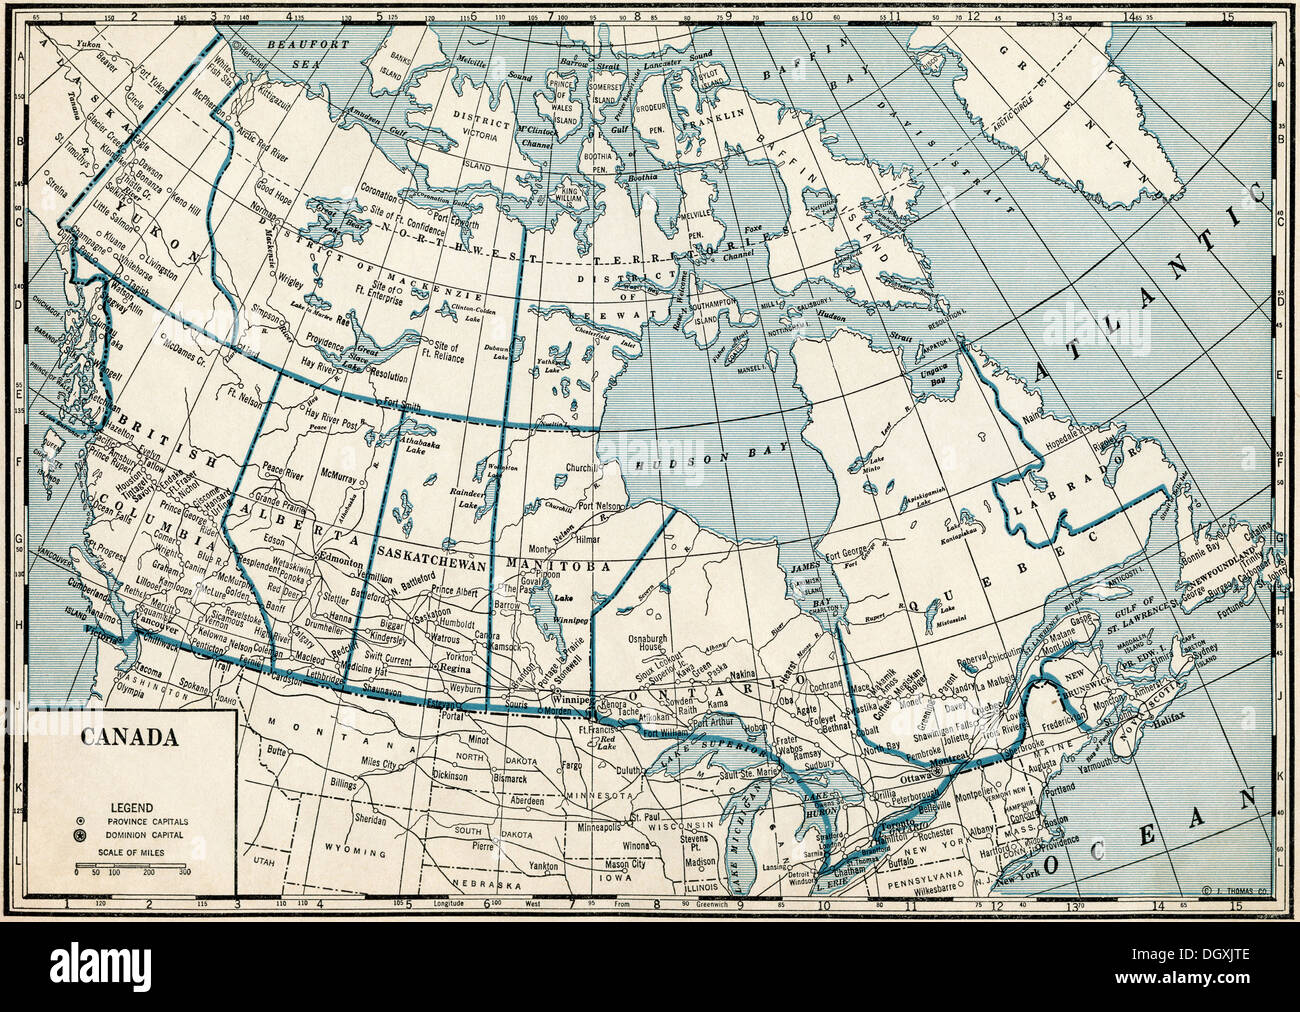 Old Map Of Canada 1930 S Stock Photo 62051150 Alamy